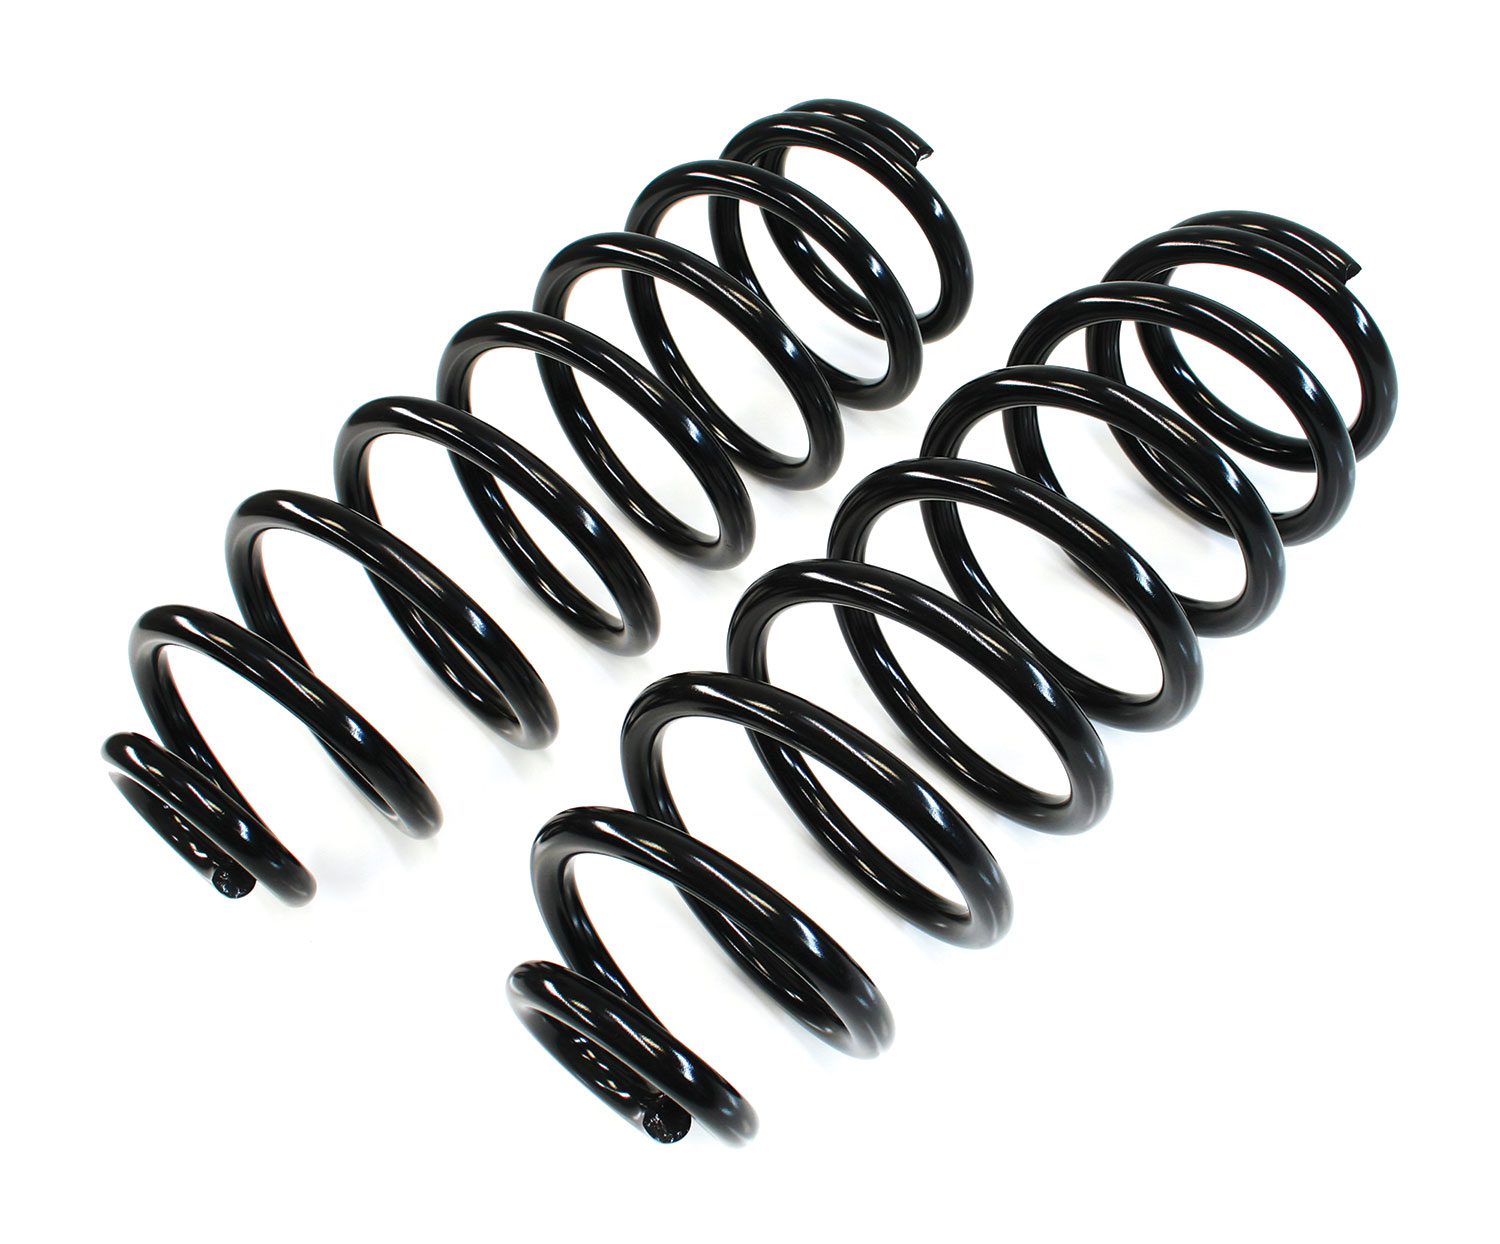 Teraflex Outback Rear Coil Springs - JK 4dr 3in/JK 2dr 4in